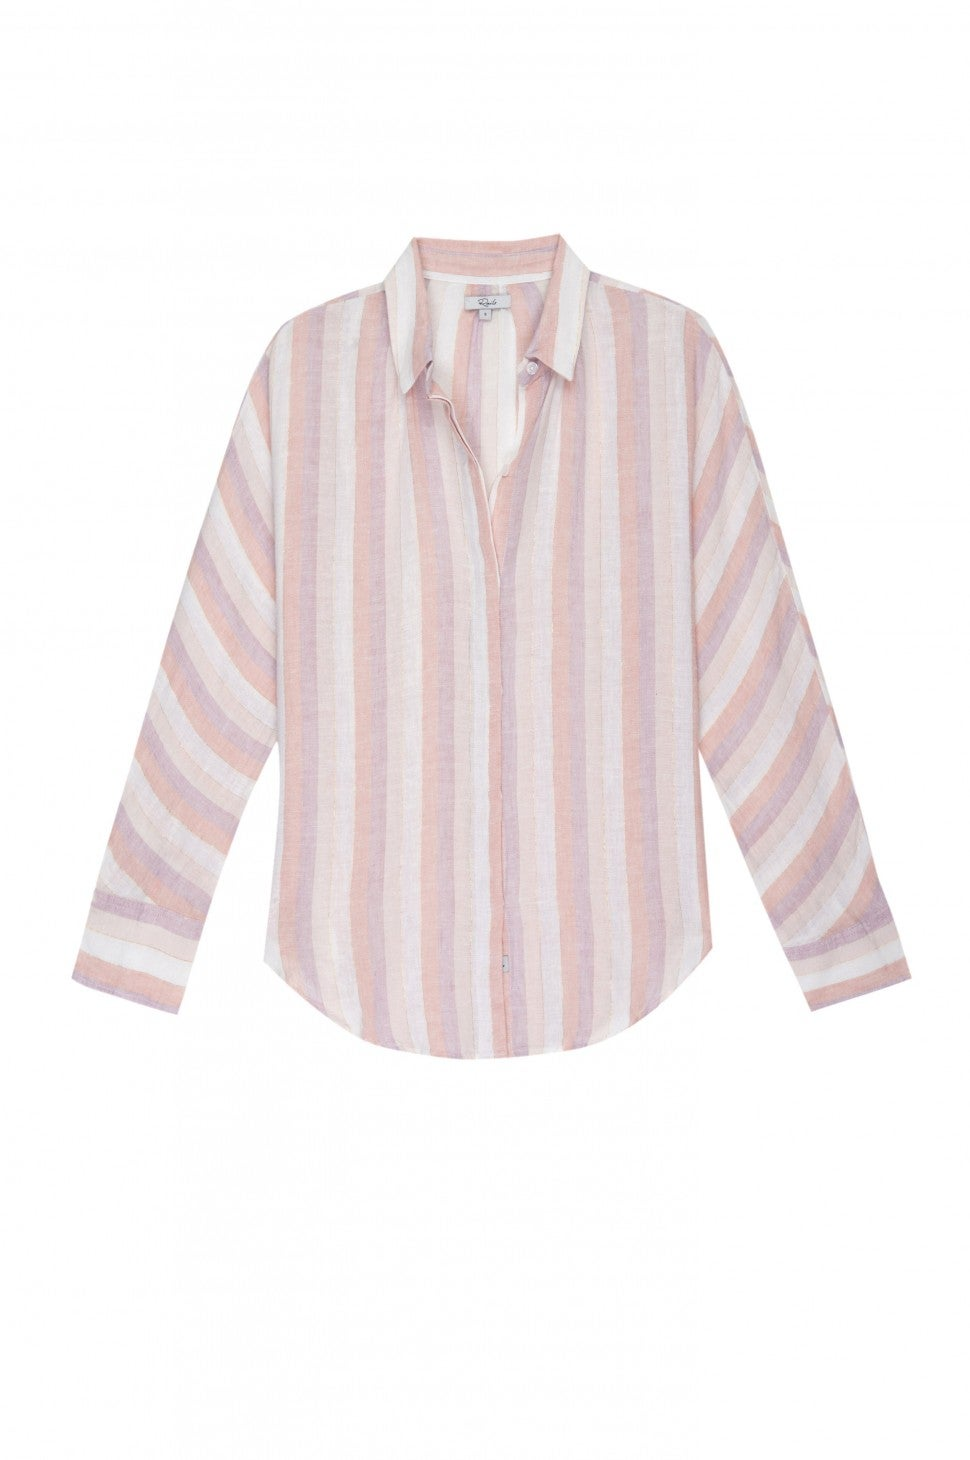 Rails pink striped shirt